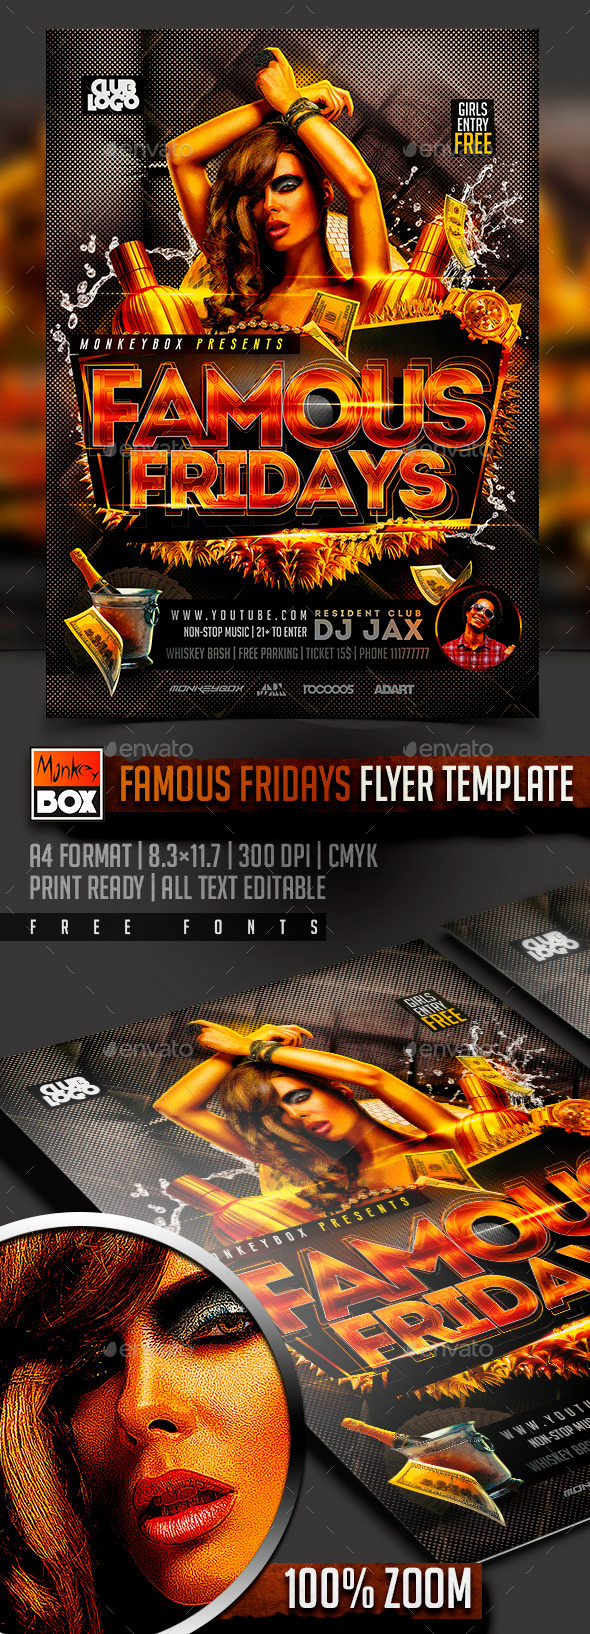 Famous Fridays Flyer Template